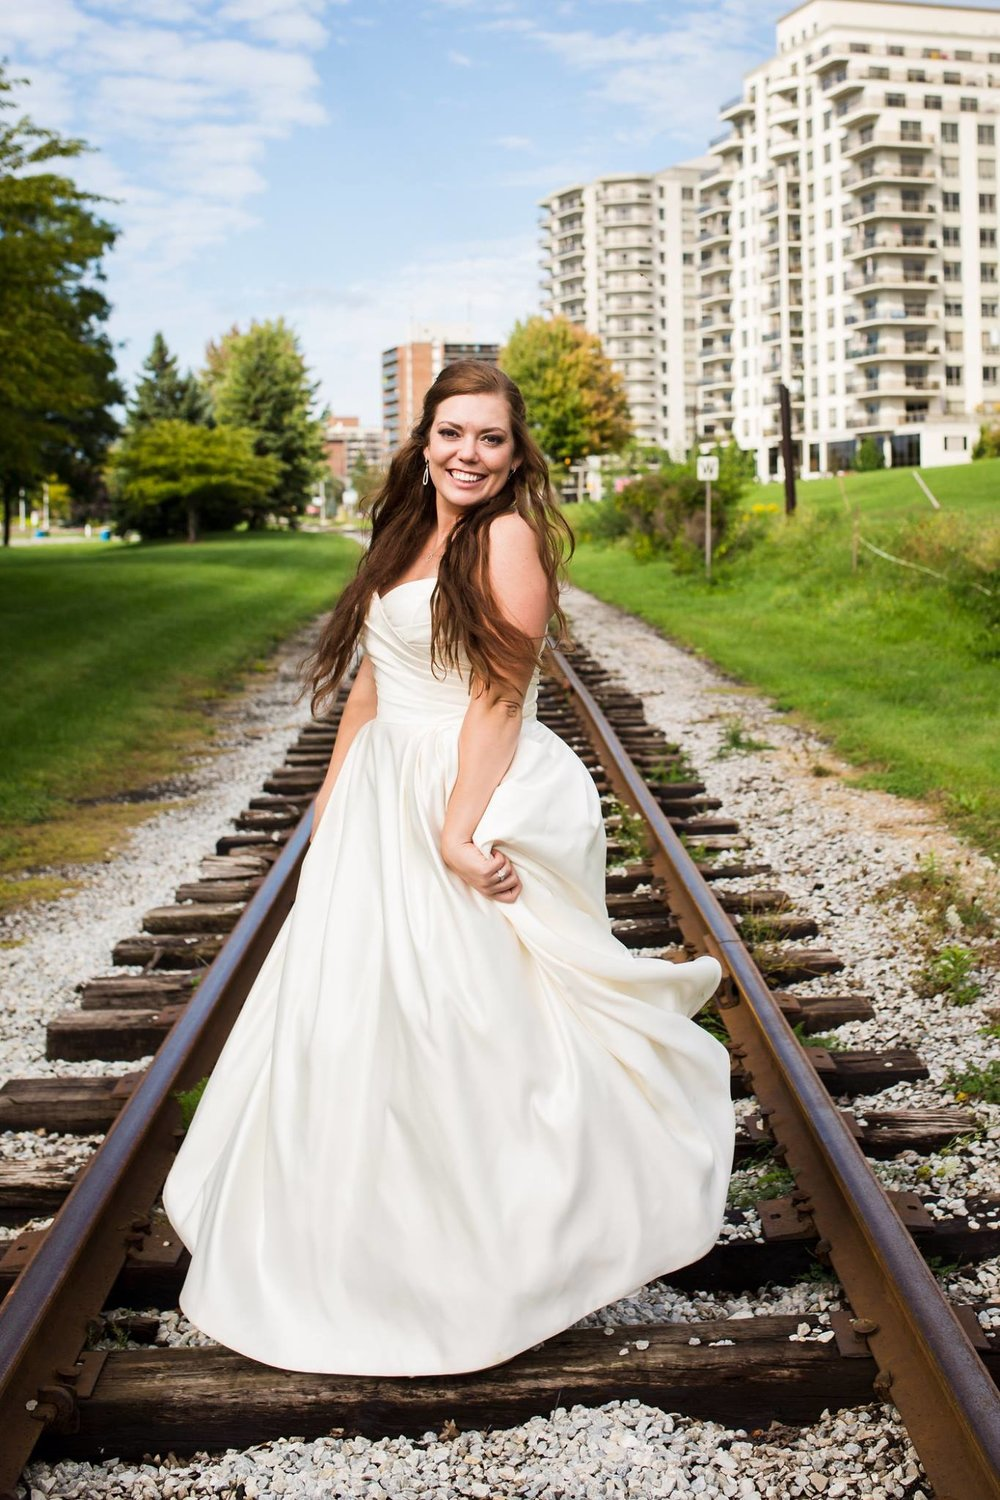 Bride: Lyndsay Photographer: Live.Love.Laugh Photography